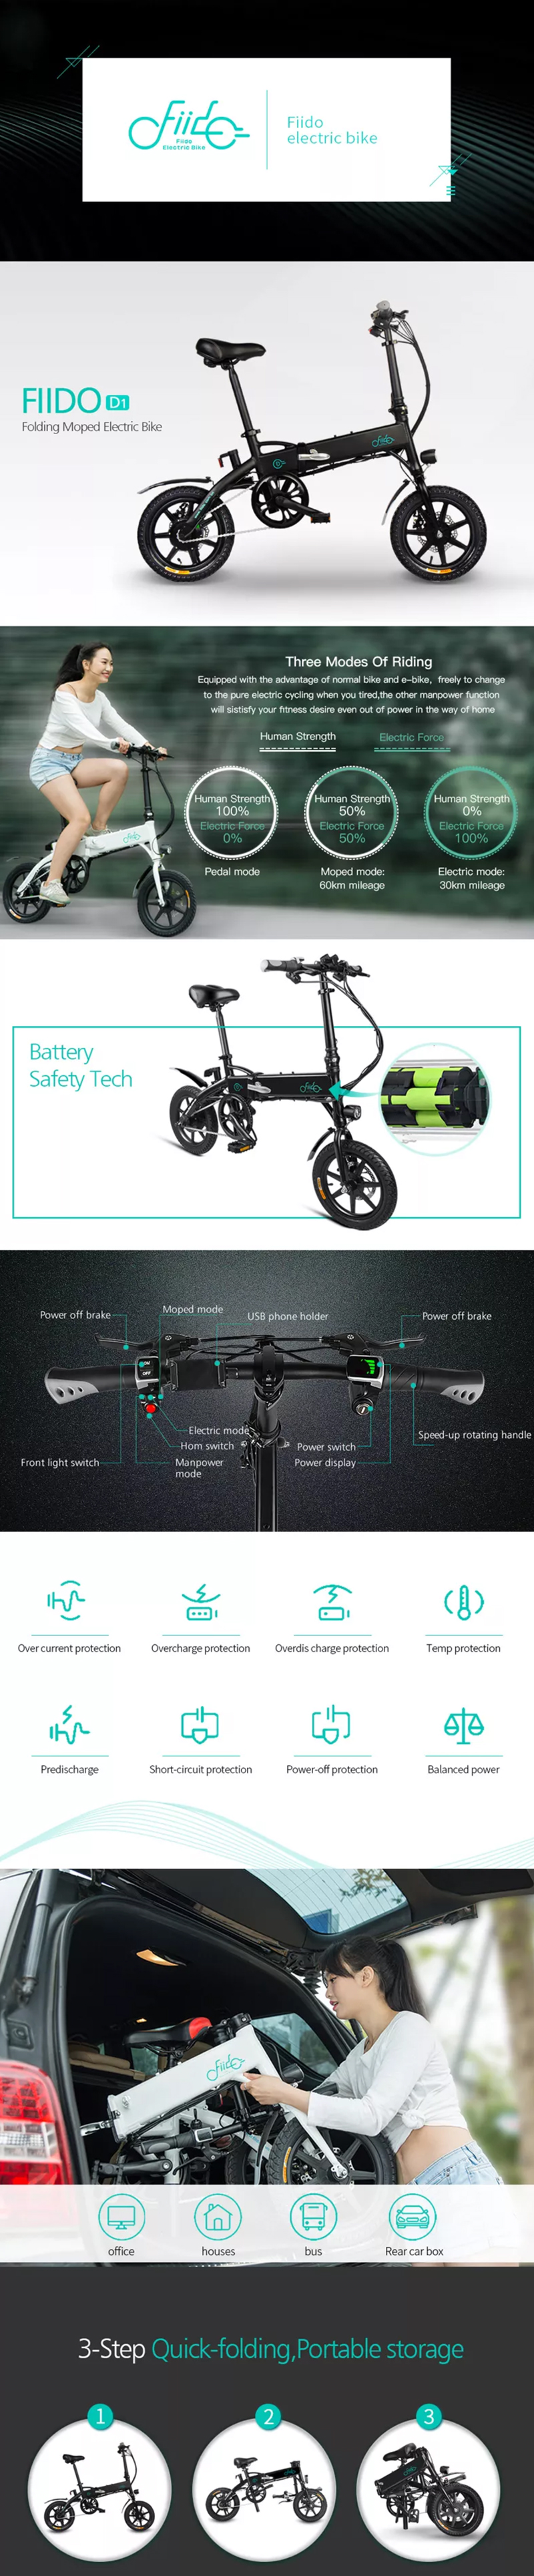 [EU Direct] FIIDO D1 36V 250W 7.8Ah 14 Inches Folding Moped Bicycle 25km/h Max 60KM Mileage Electric Bike